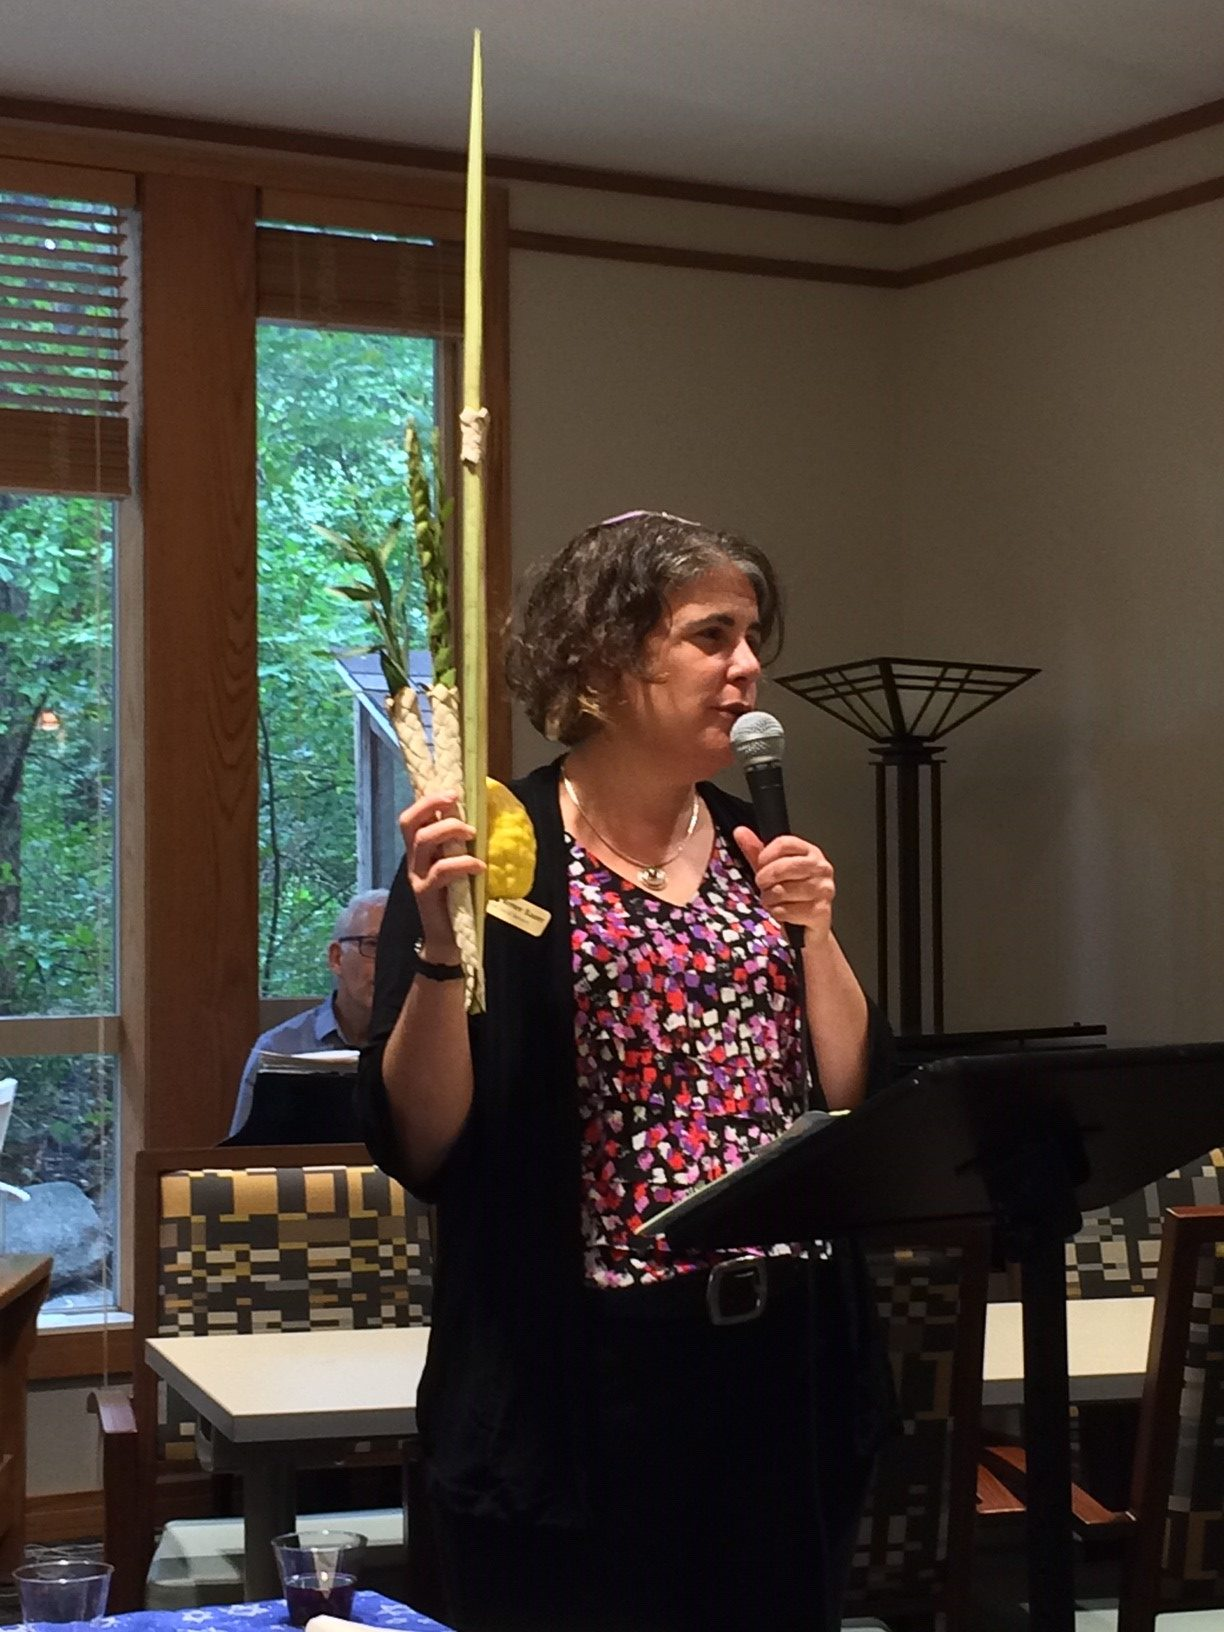 Rabbi Renee holds lulav and etrog